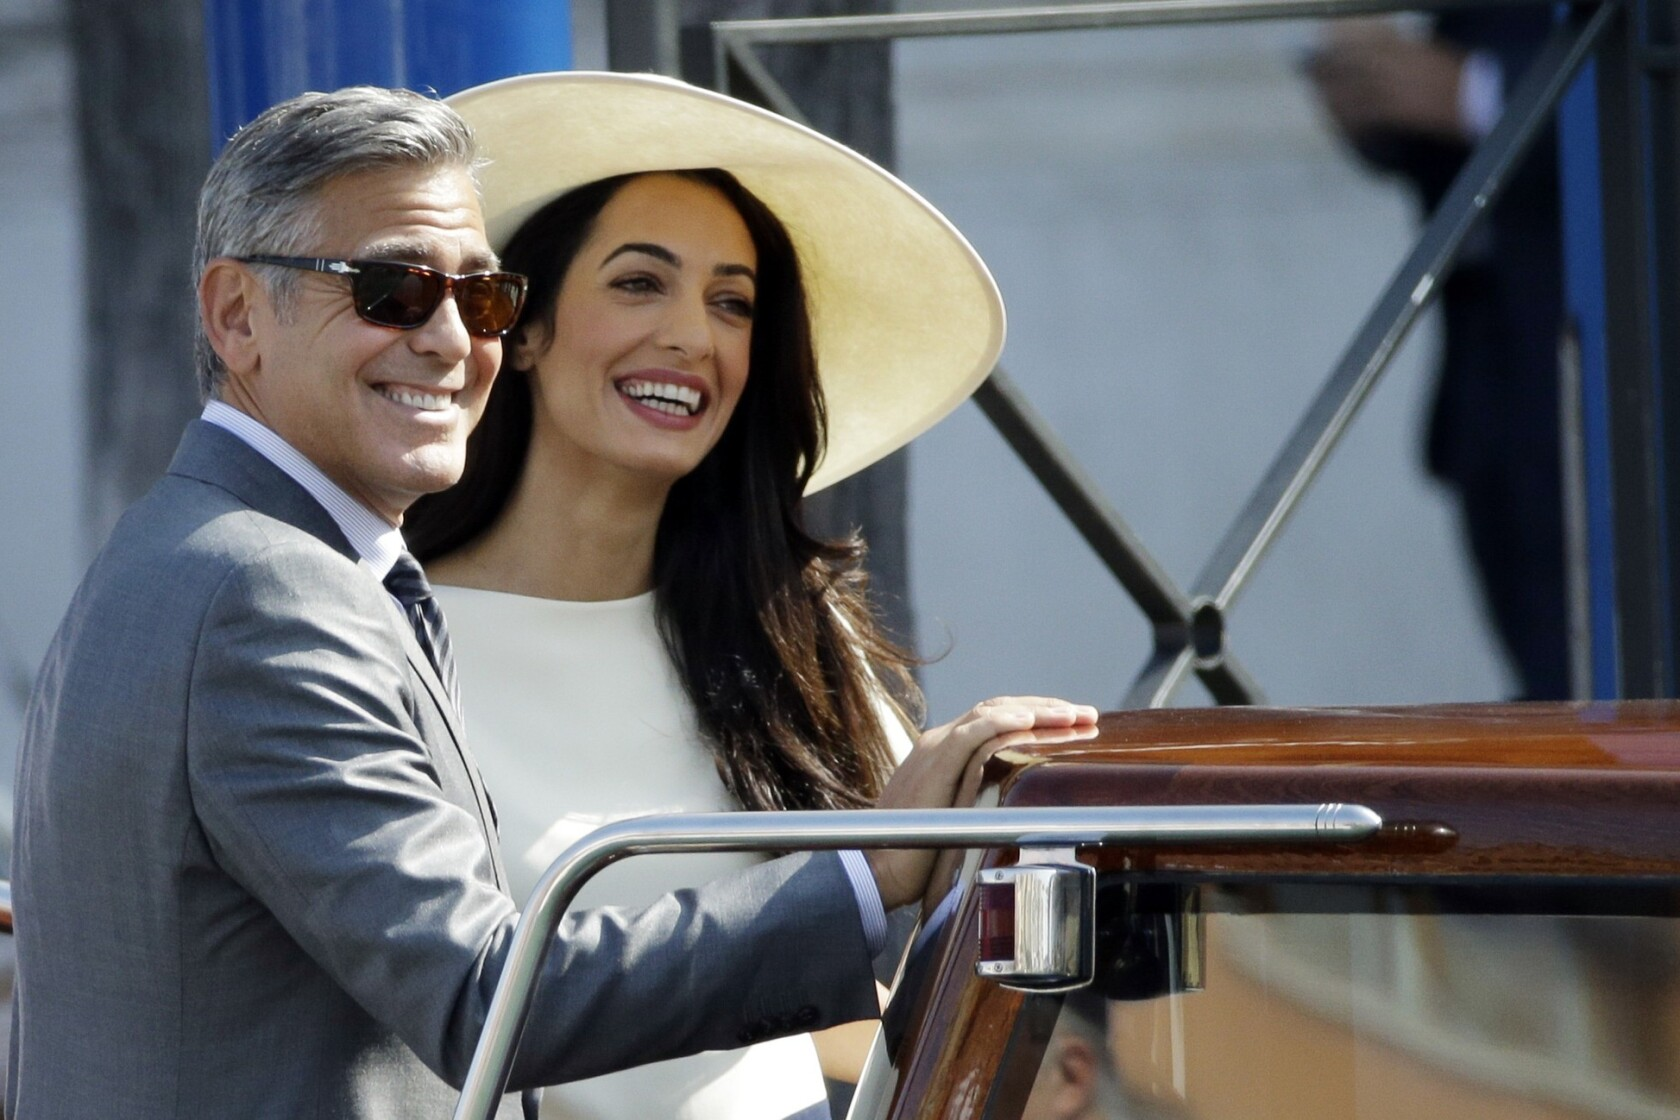 Amal Clooney is Barbara Walters' 'Most Fascinating' for marrying George Clooney